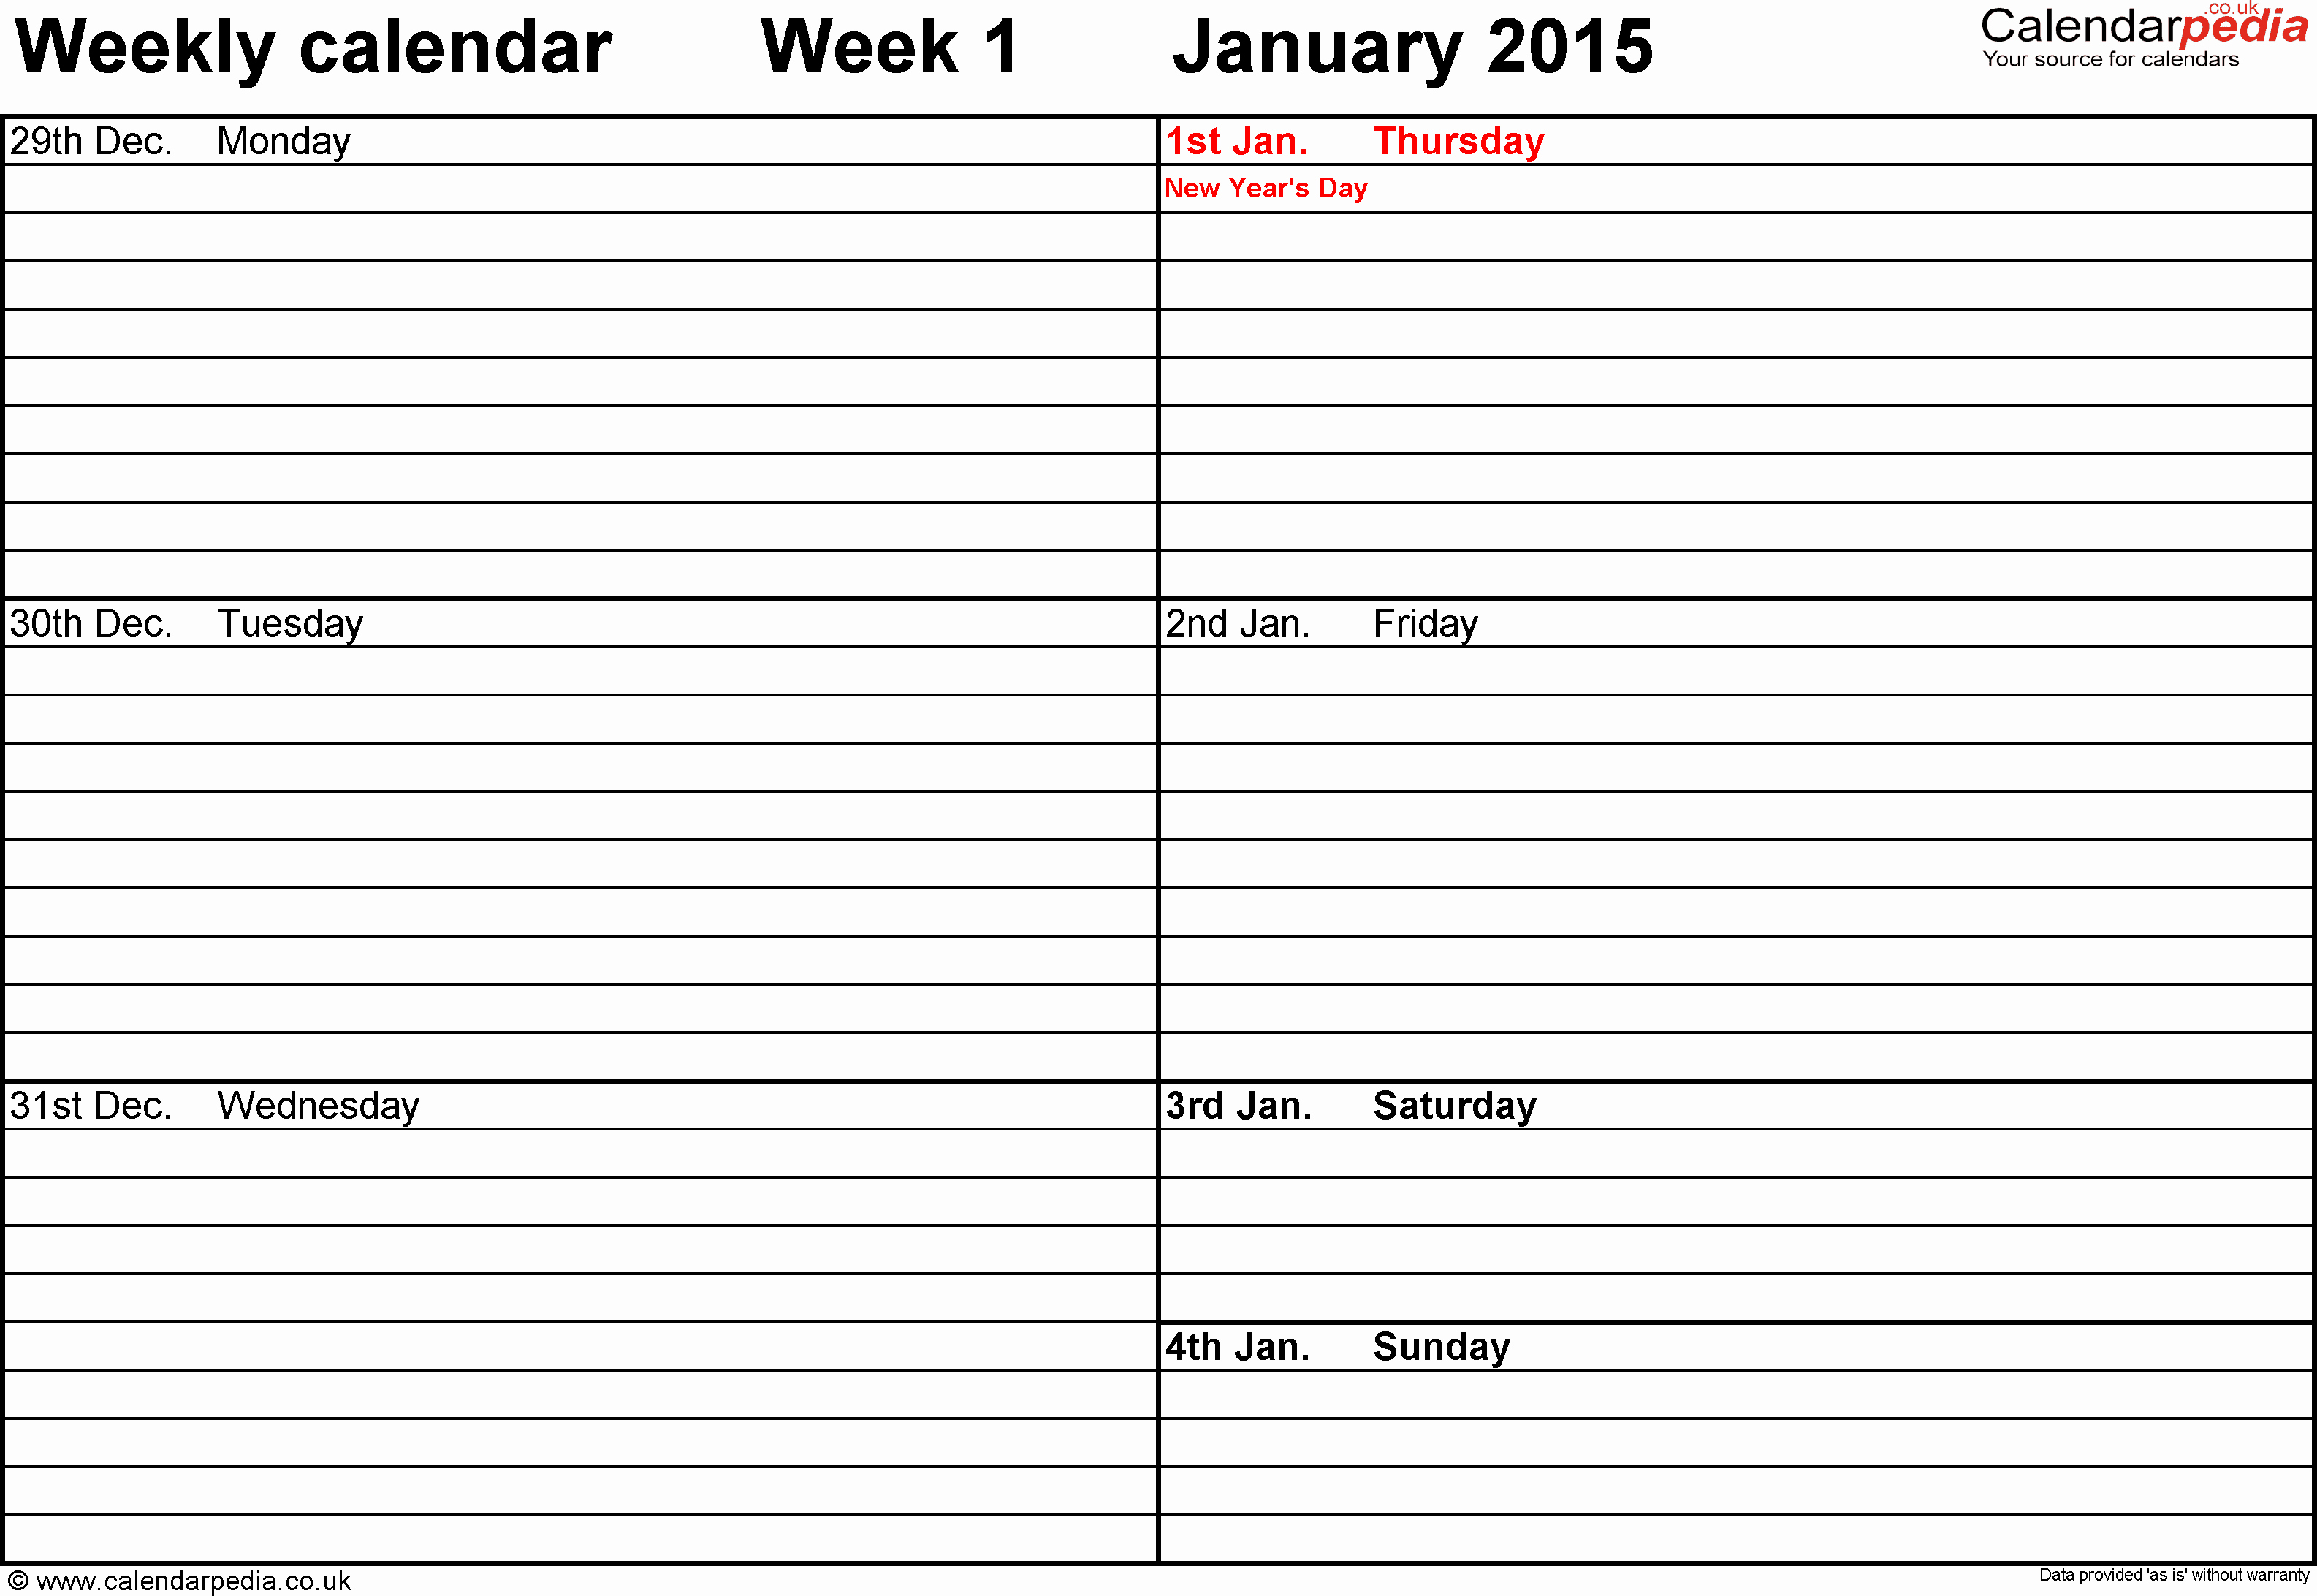 Printable Weekly Calendars with Times Luxury Weekly Calendar Pdf